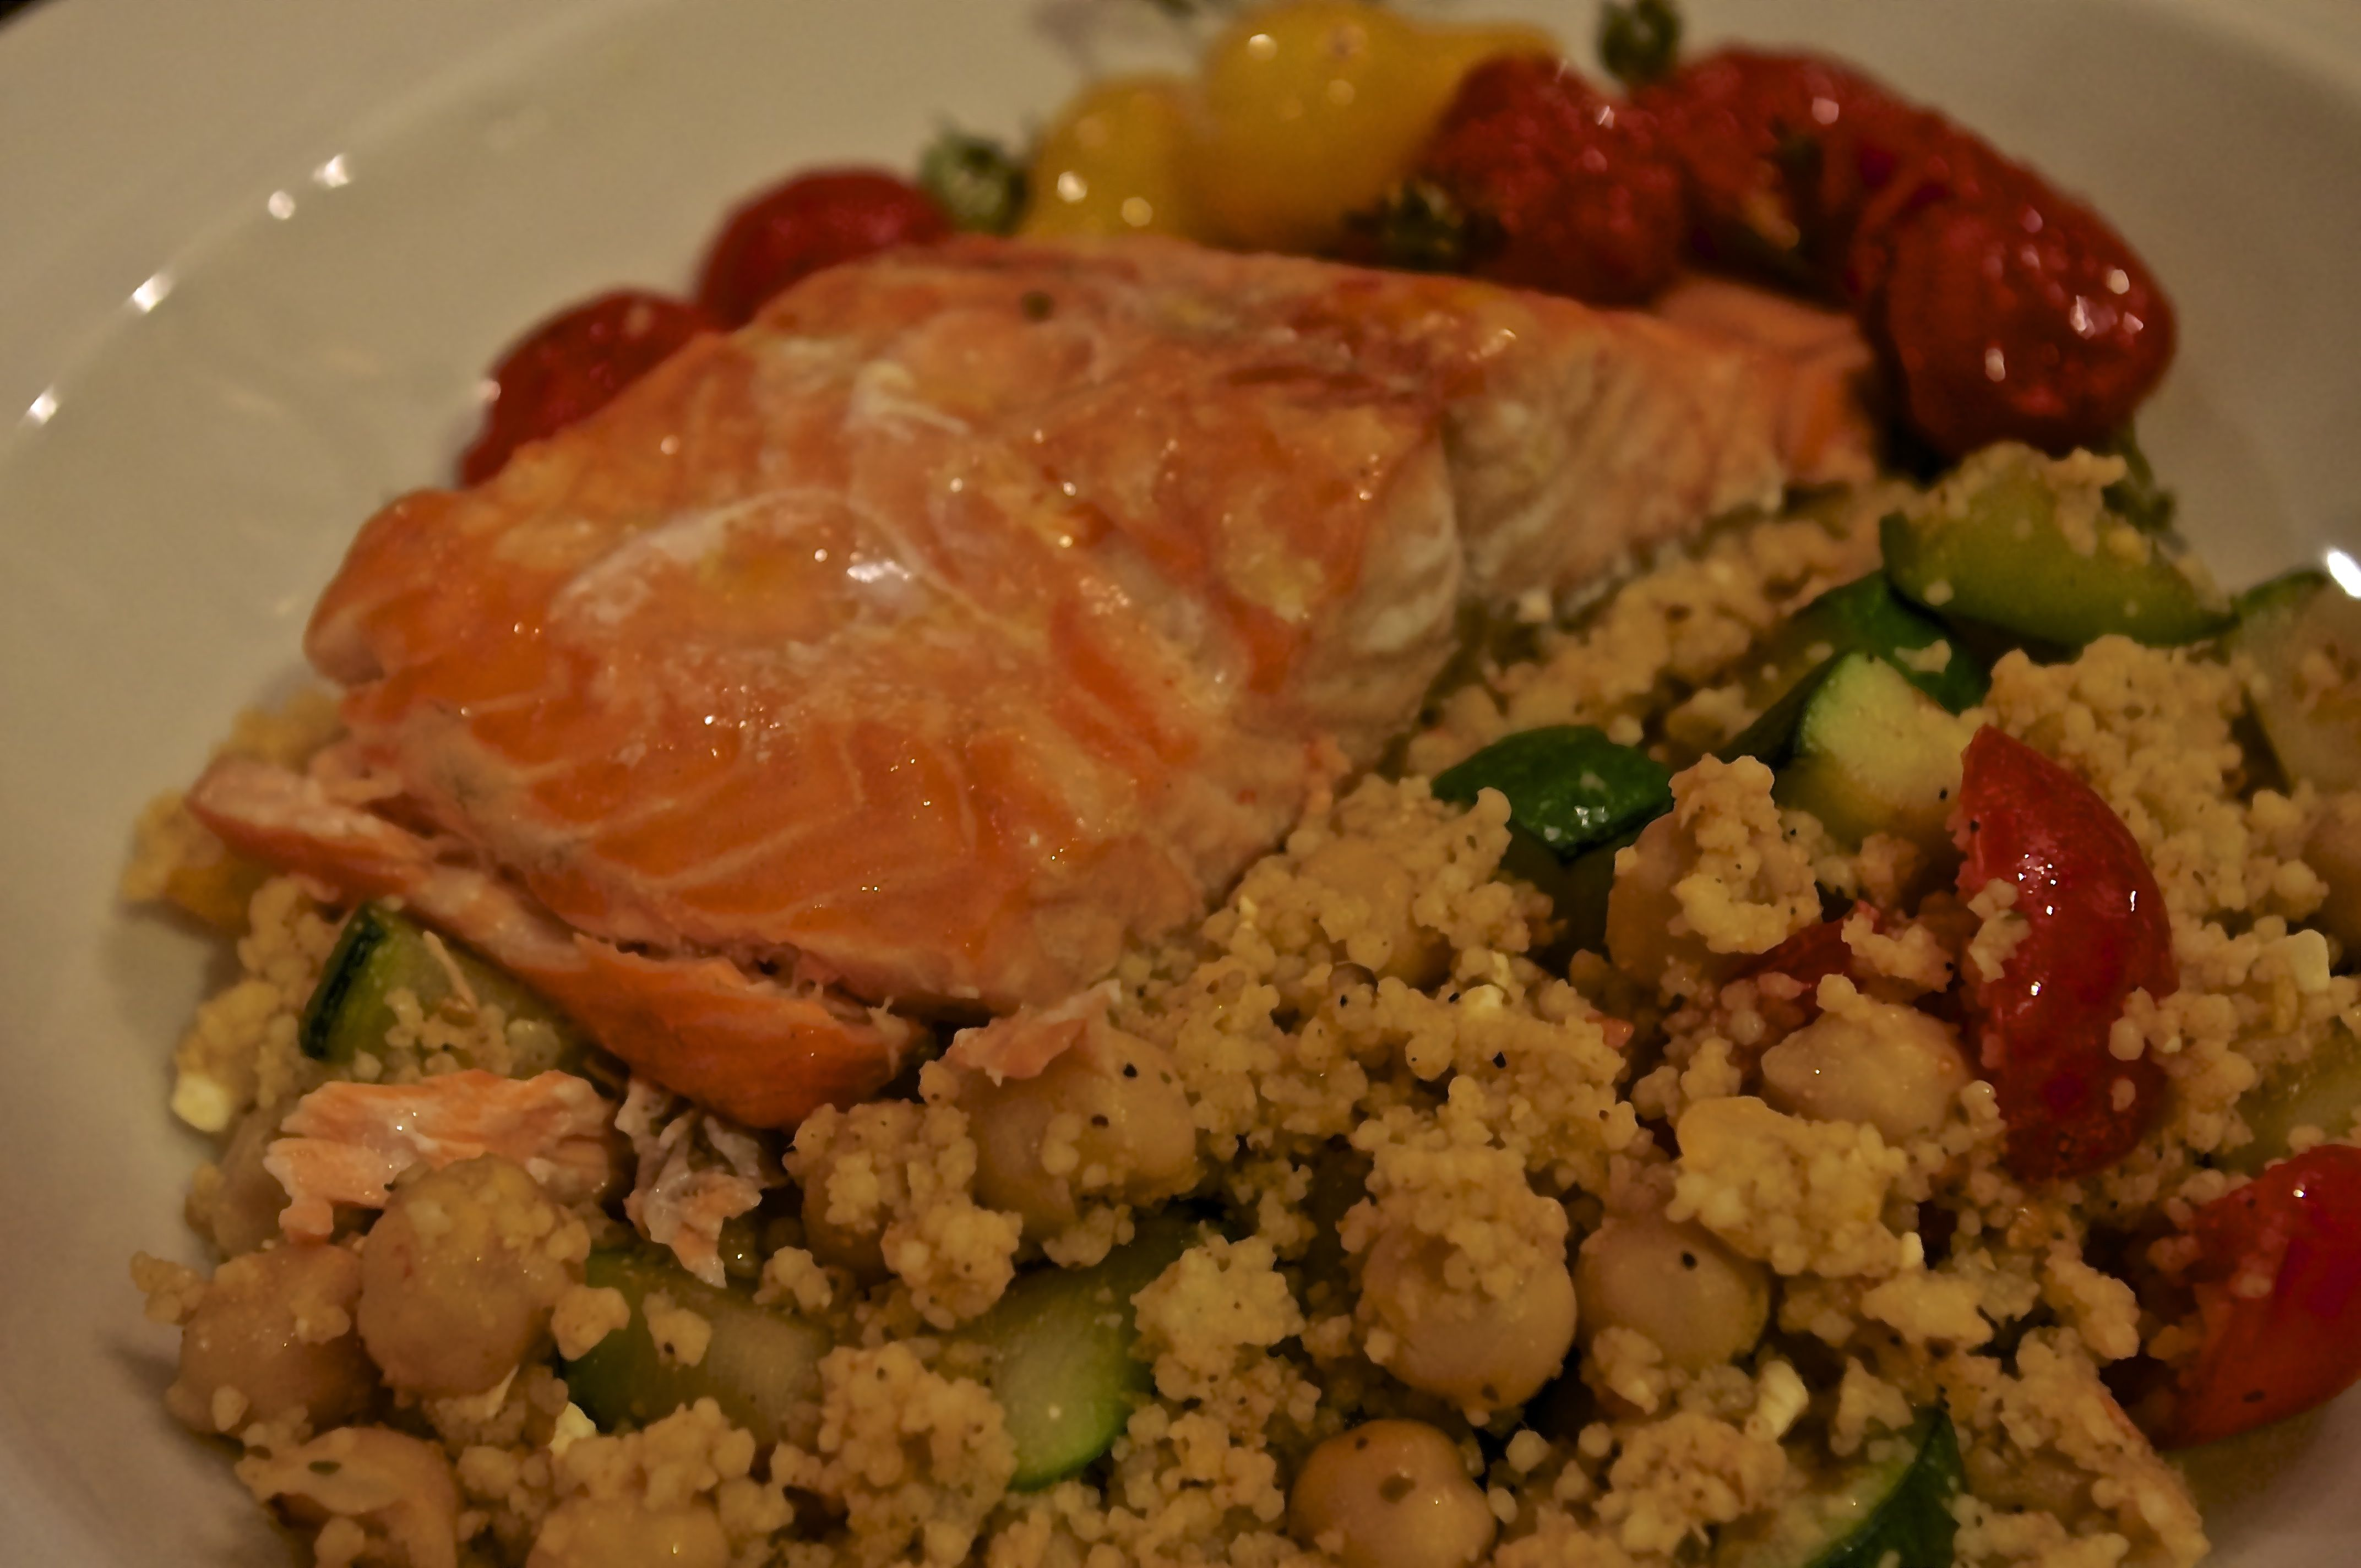 roasted salmon fillets with tomatoes and feta couscous. Black Bedroom Furniture Sets. Home Design Ideas